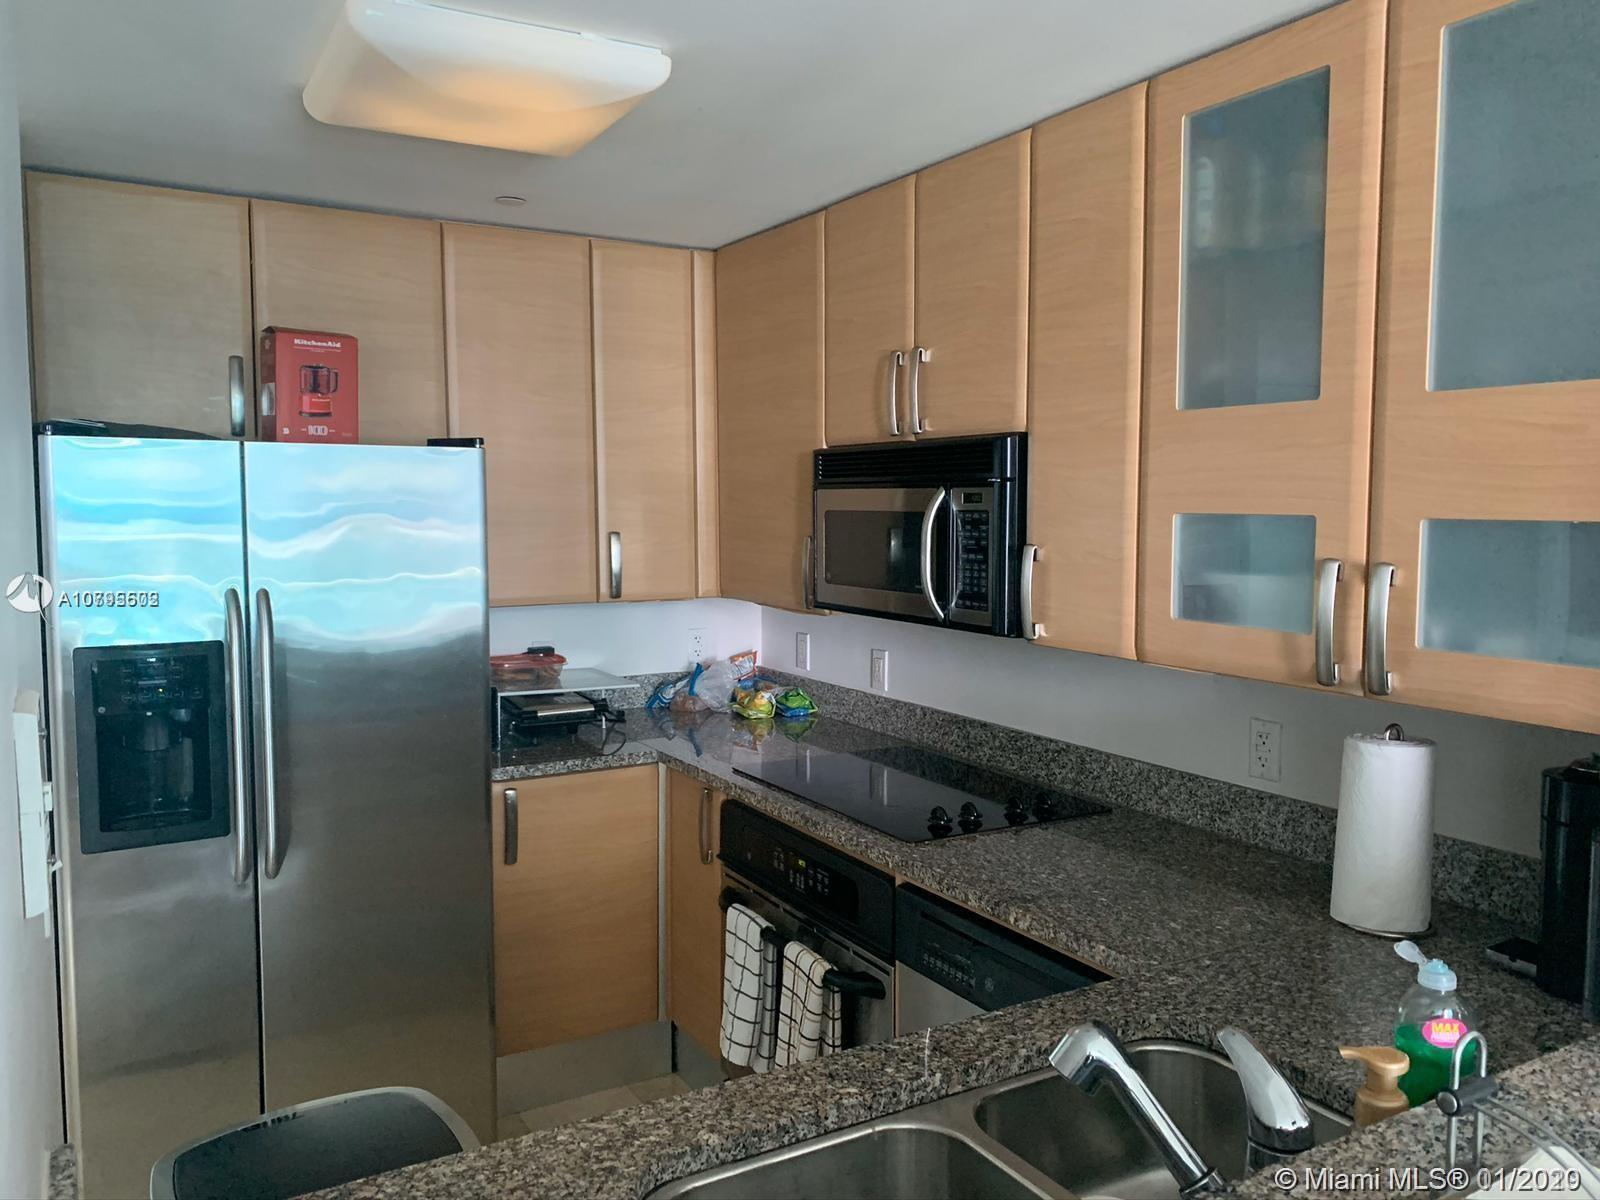 Location location!! Spacious and stunning 2 bedrooms / 2 bathrooms unit at the prestigious Skyline B